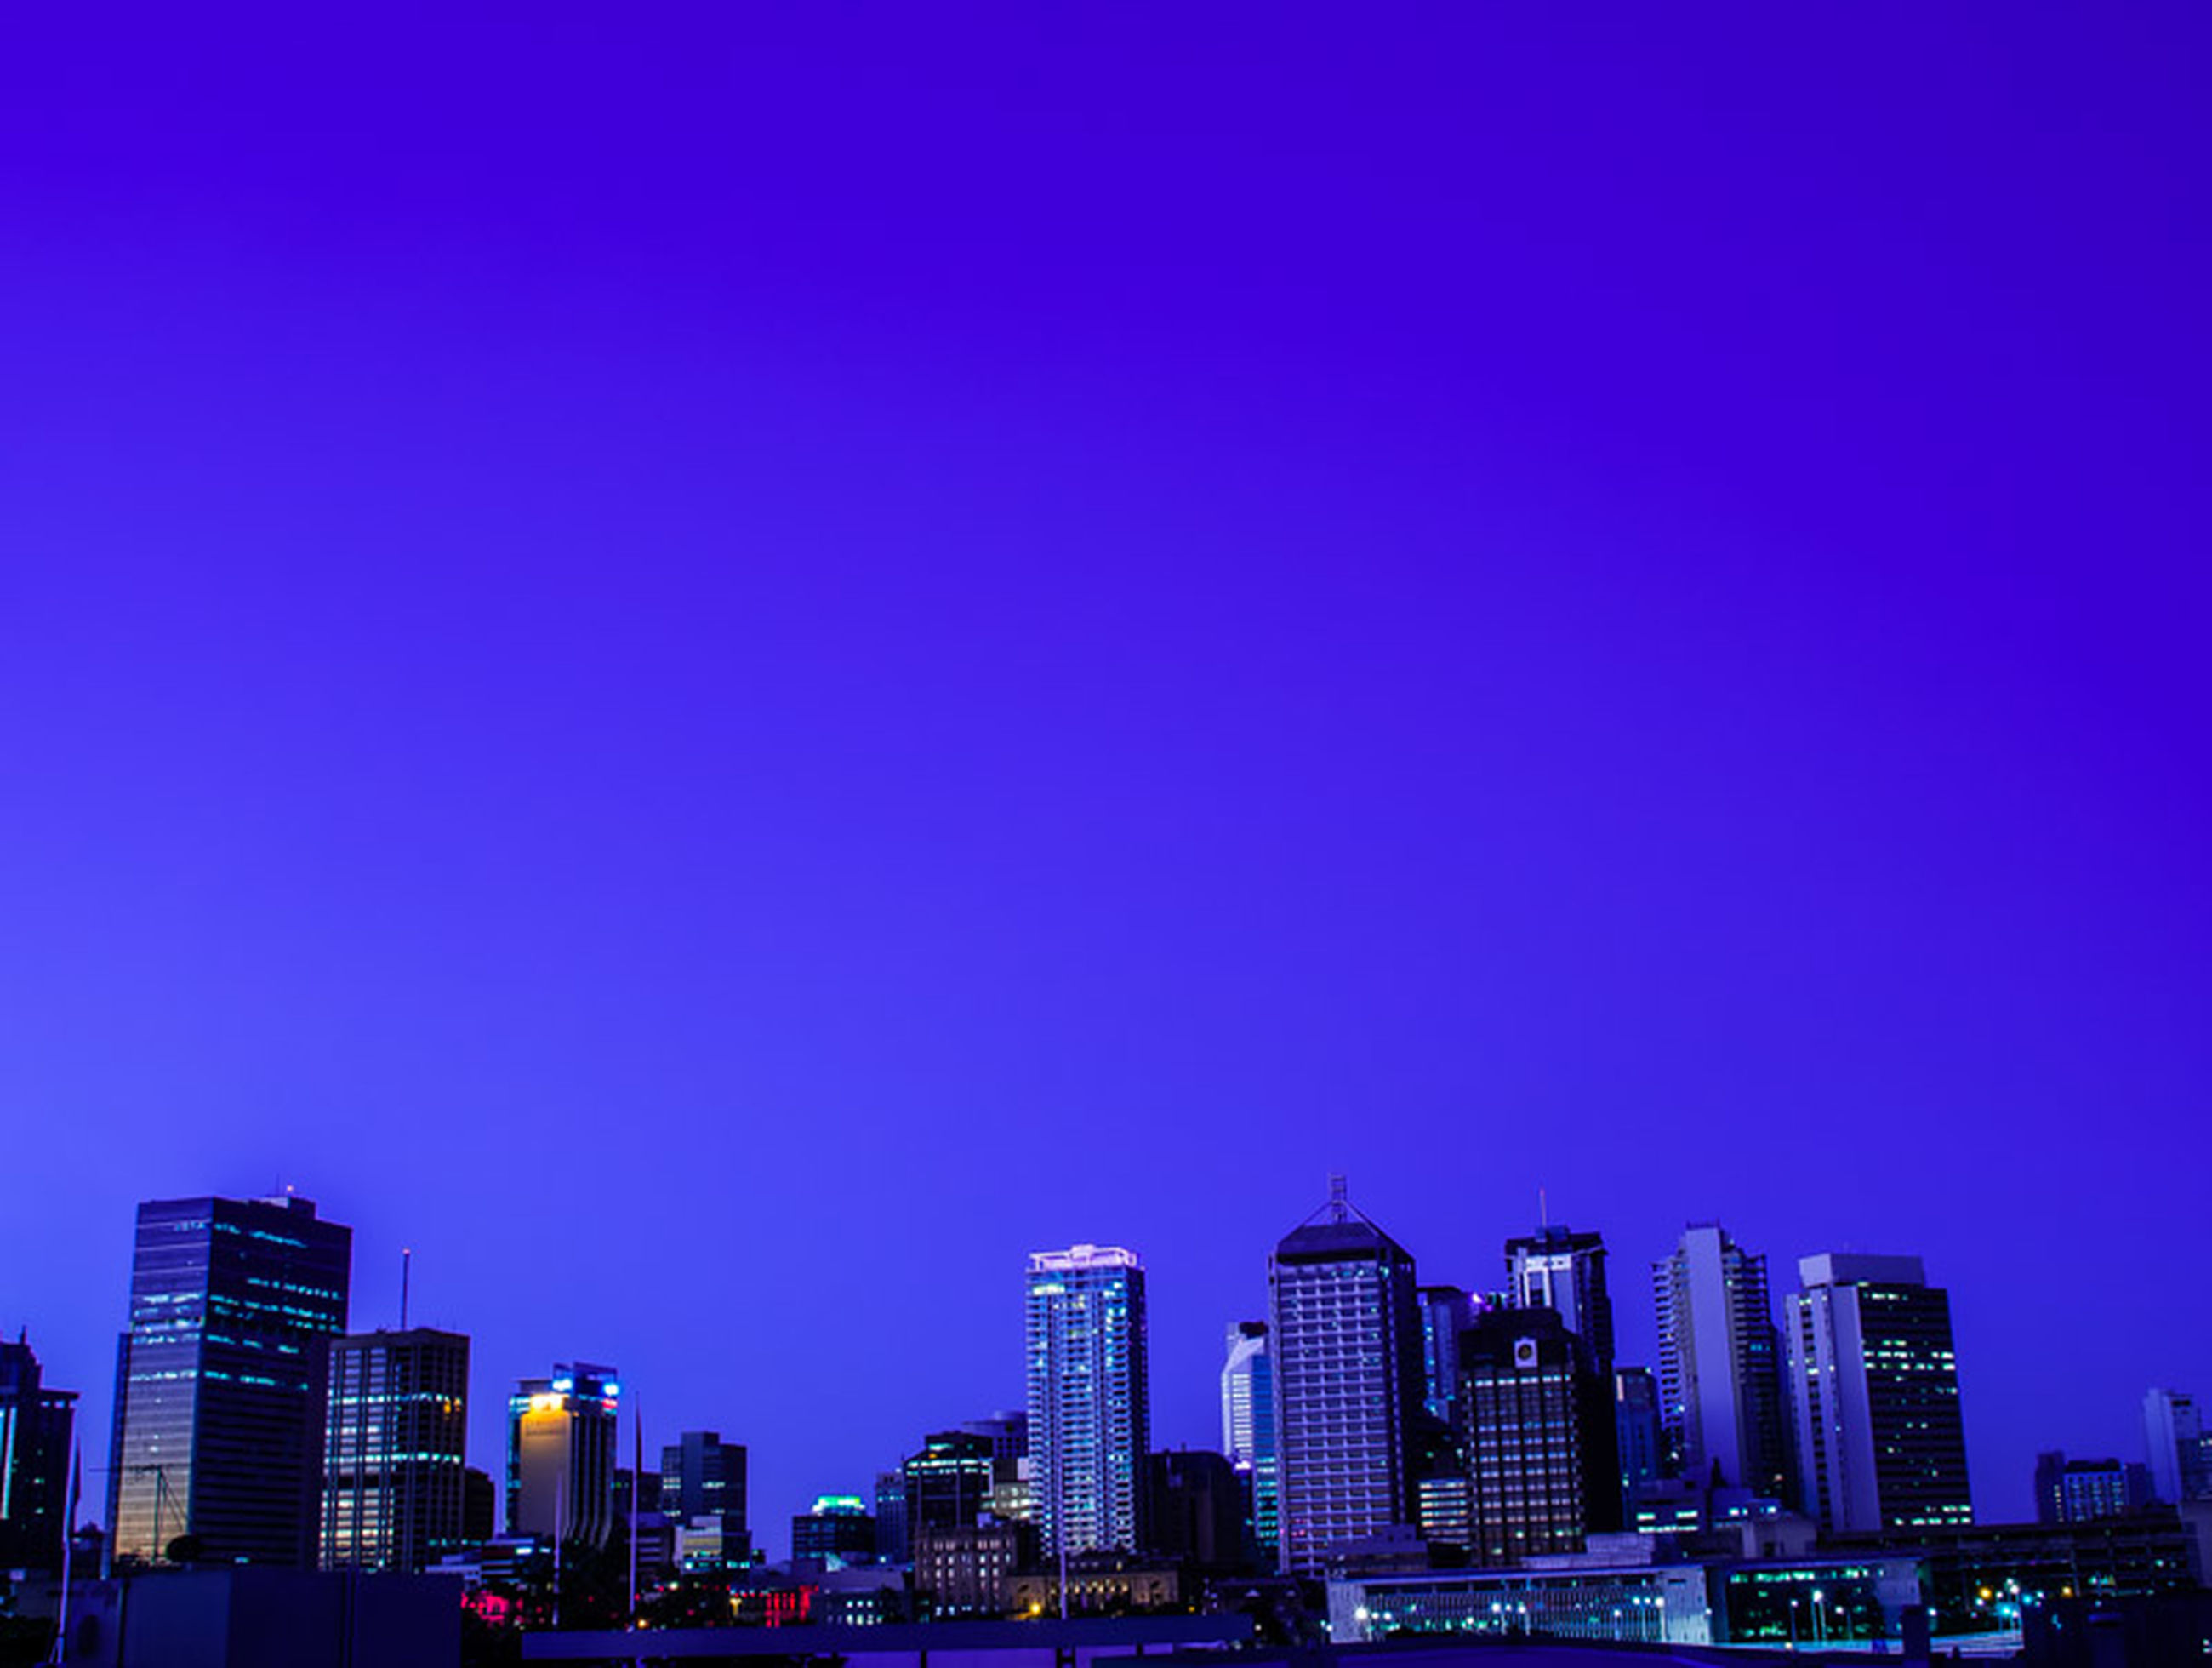 building exterior, city, architecture, clear sky, built structure, copy space, blue, skyscraper, cityscape, illuminated, night, modern, tall - high, urban skyline, office building, tower, city life, low angle view, outdoors, financial district